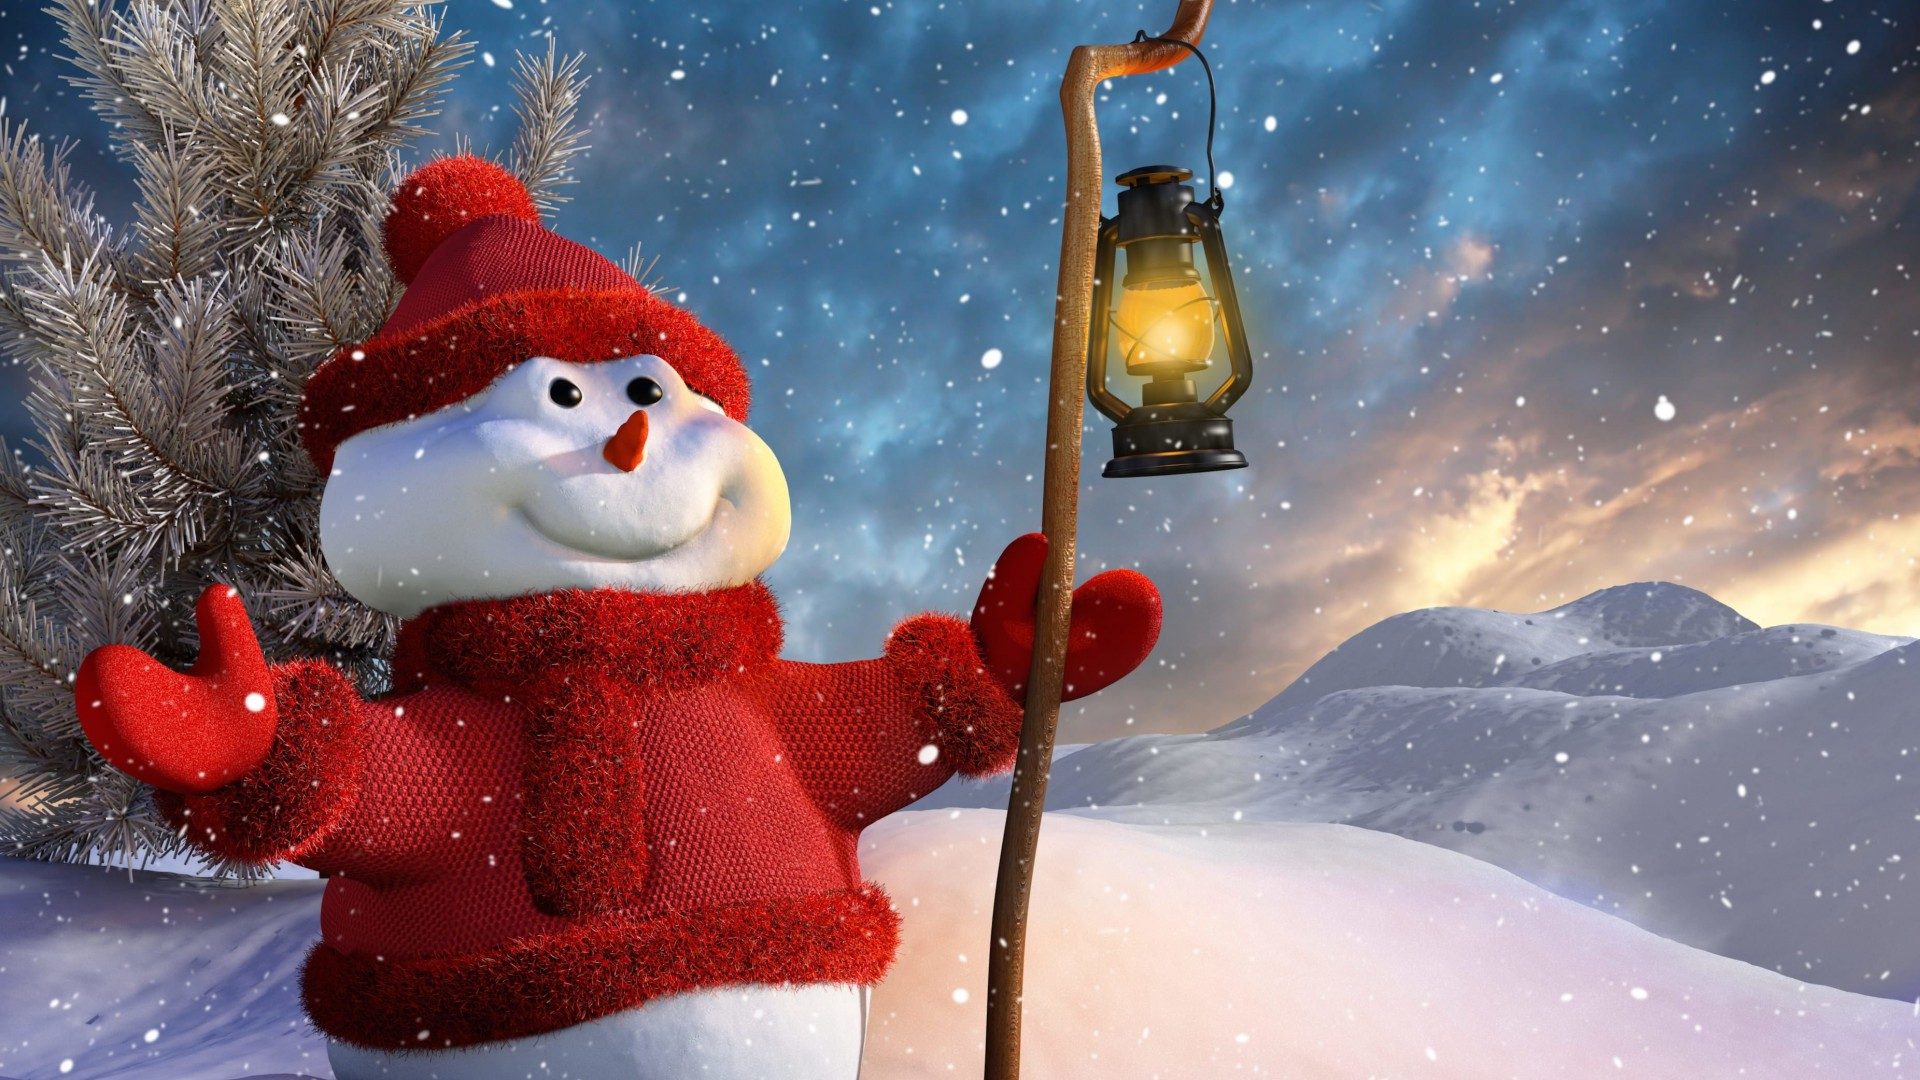 Christmas Snowman Wallpaper for Desktop 1920x1080